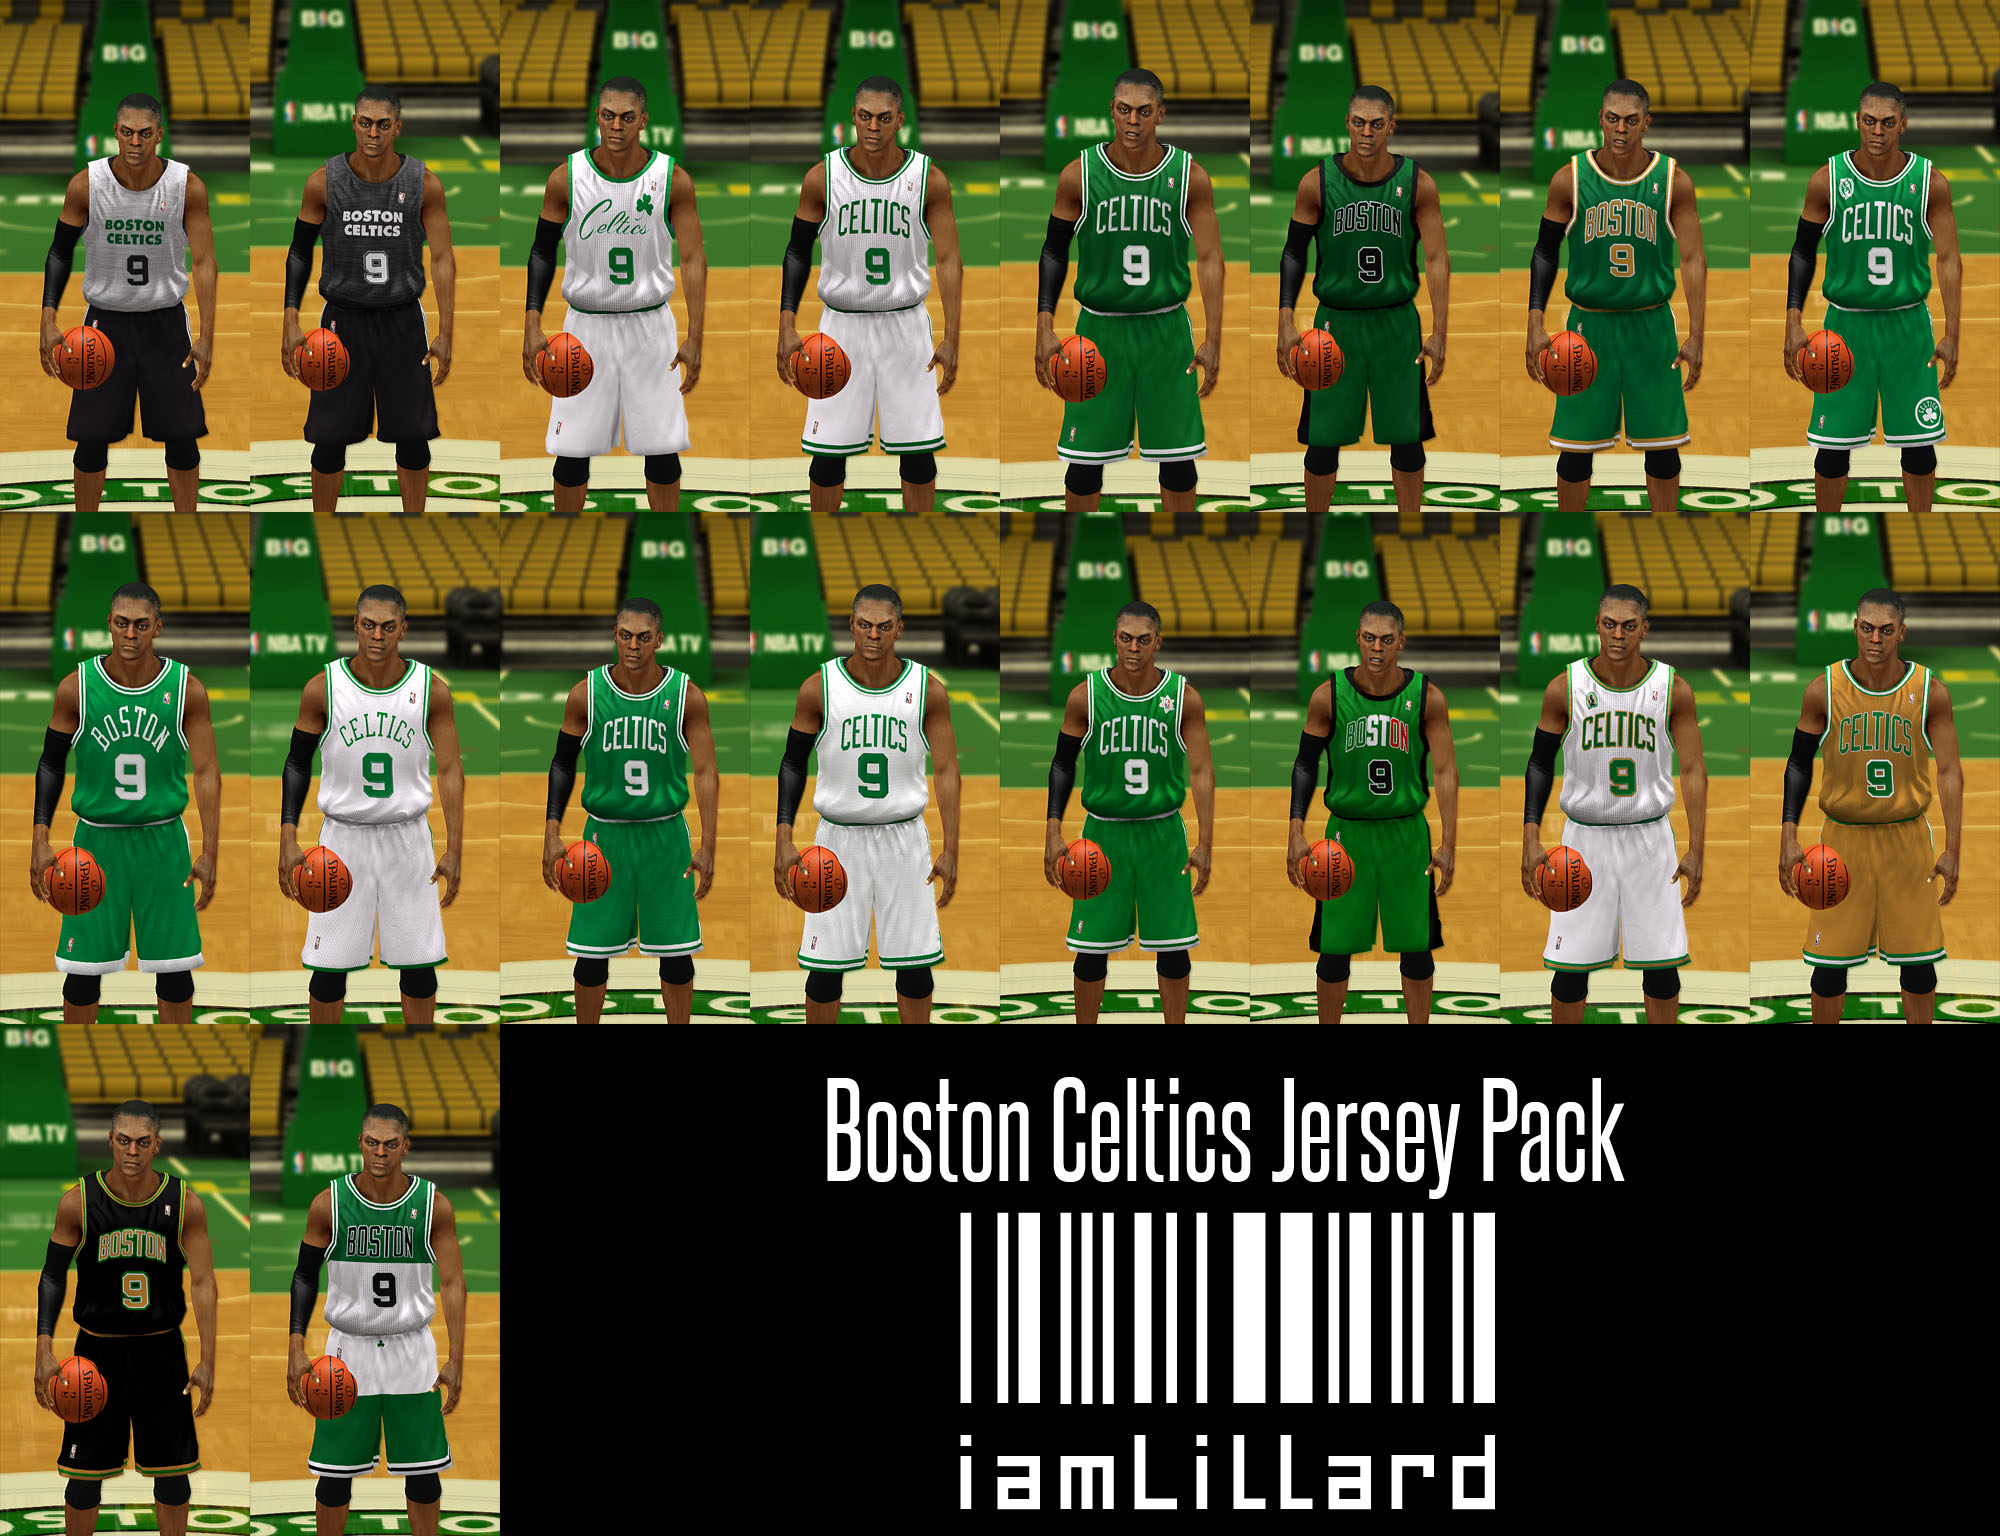 UJP Boston Celtics Jersey